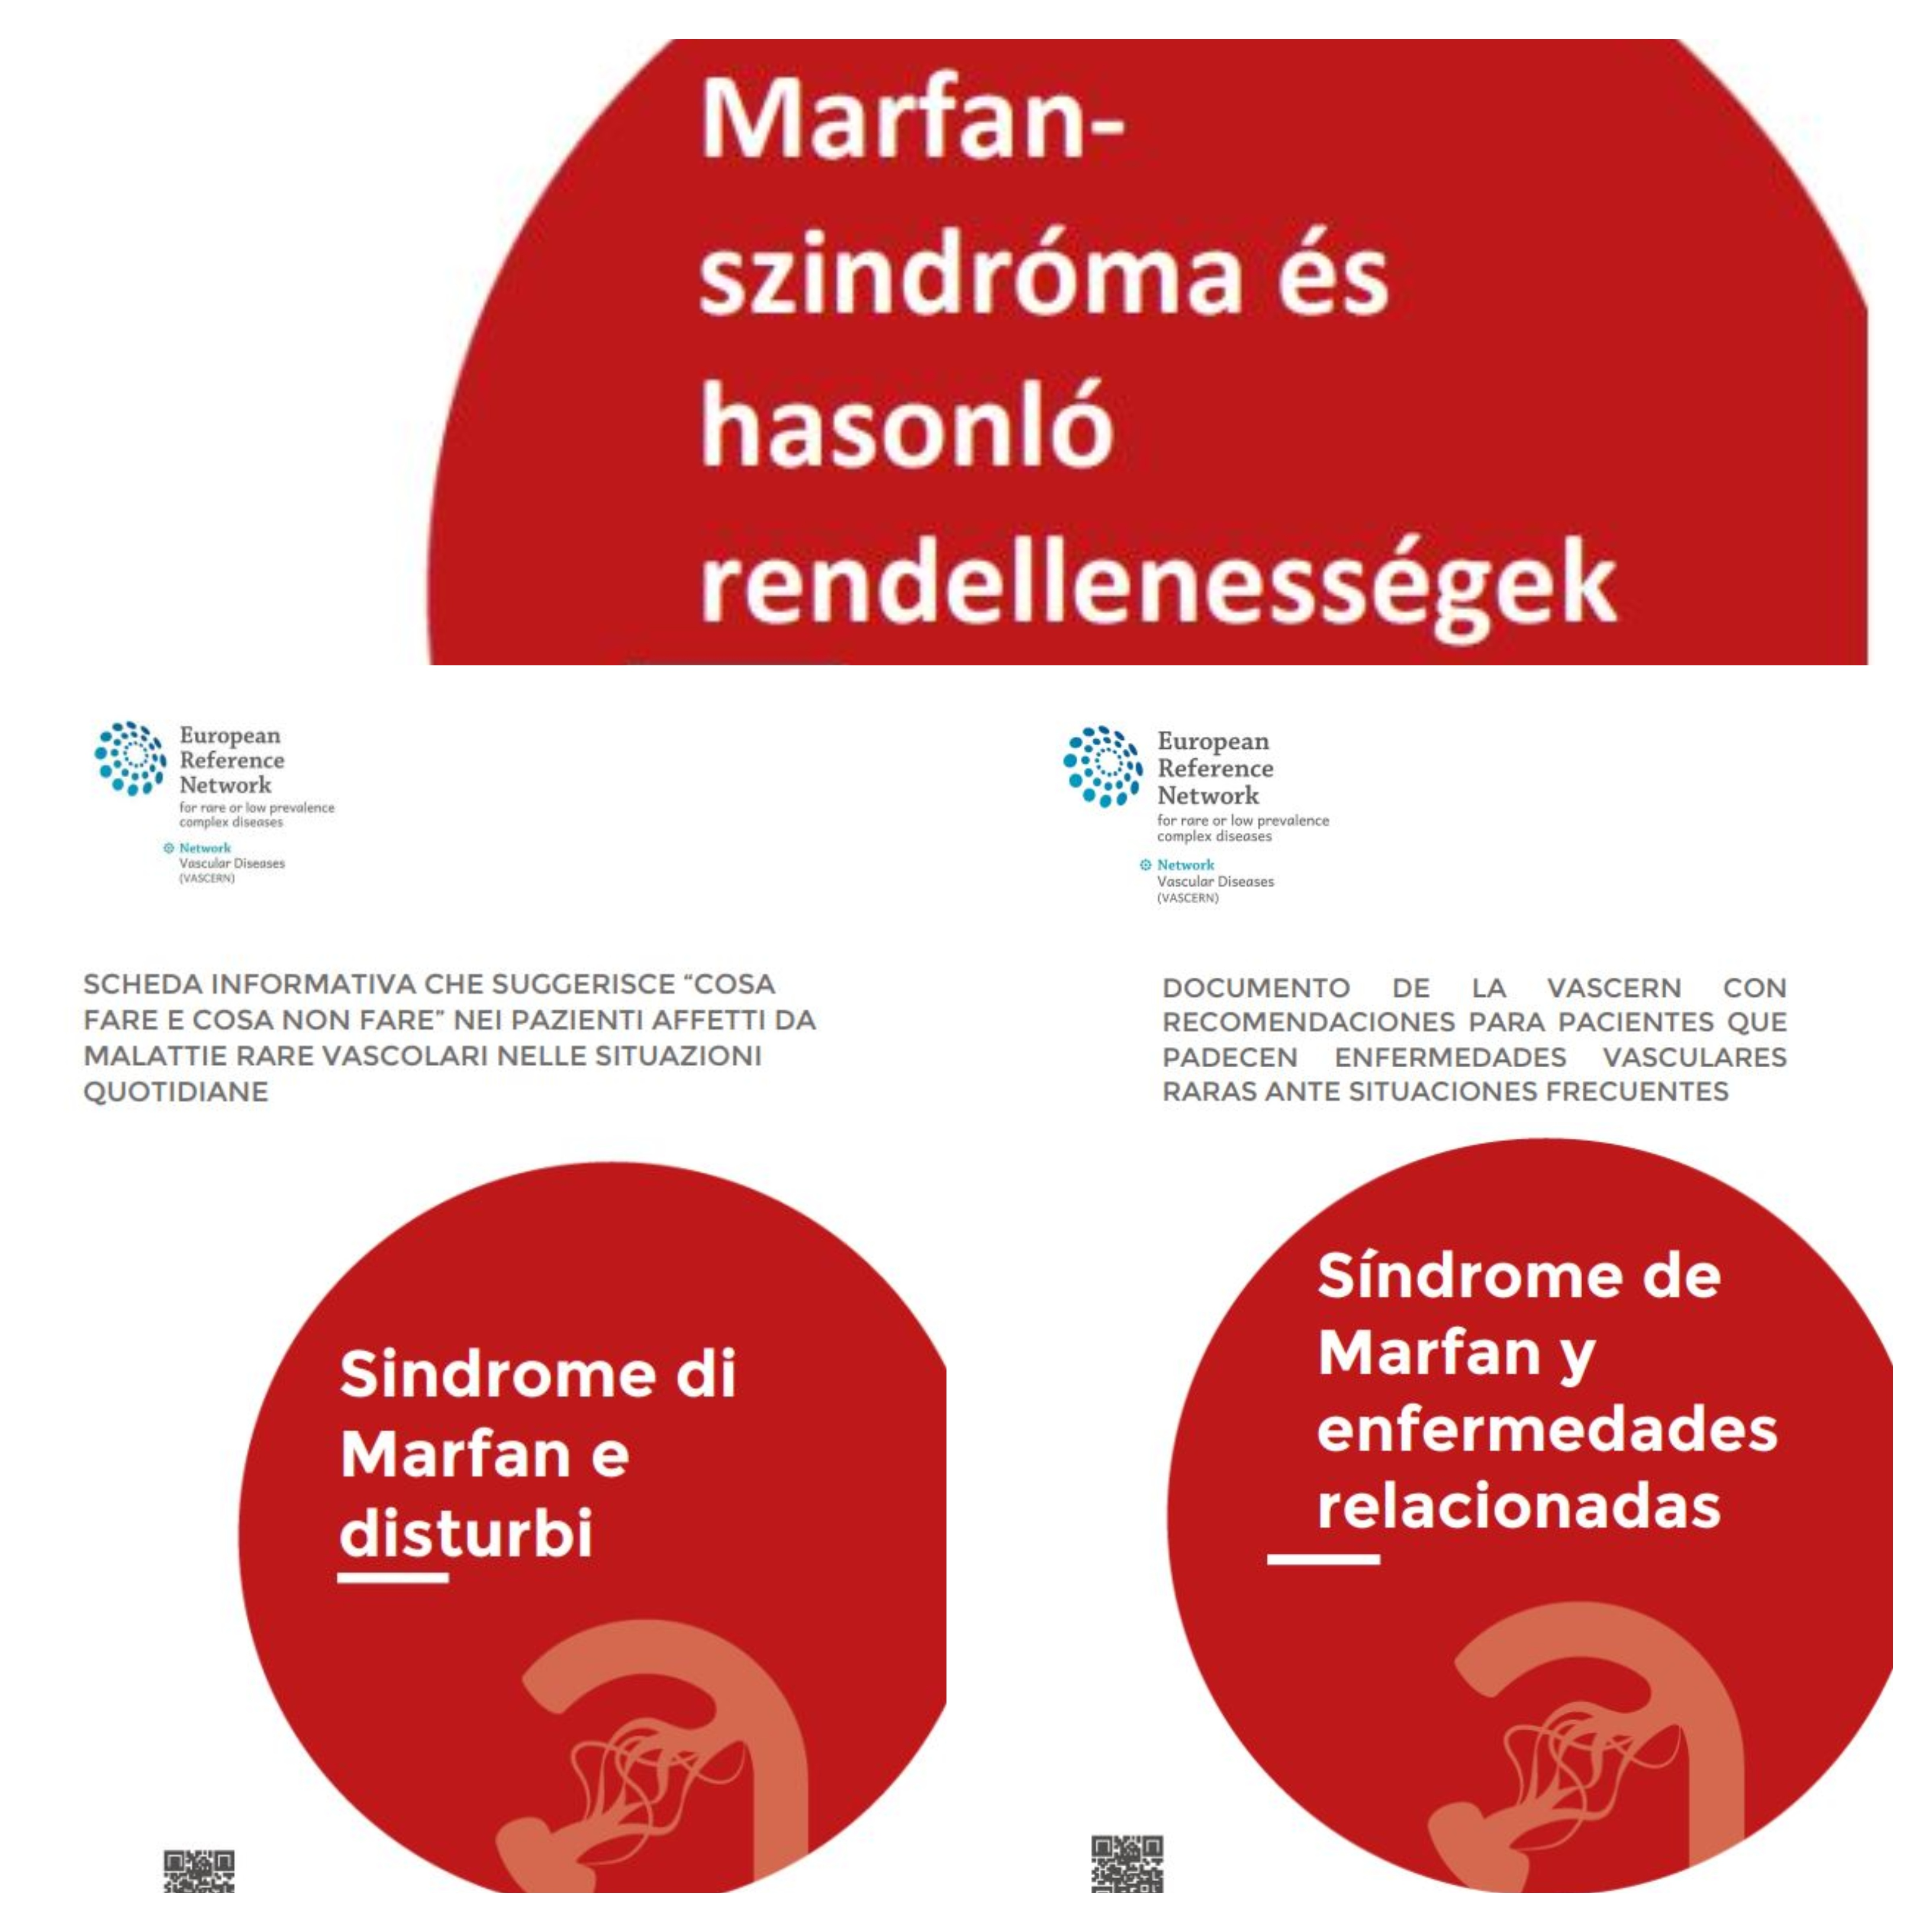 New translations of Do's and Don'ts Factsheets for Marfan Syndrome and Related Disorders (by the Heritable Thoracic Aortic Working Group – HTAD WG) now available!